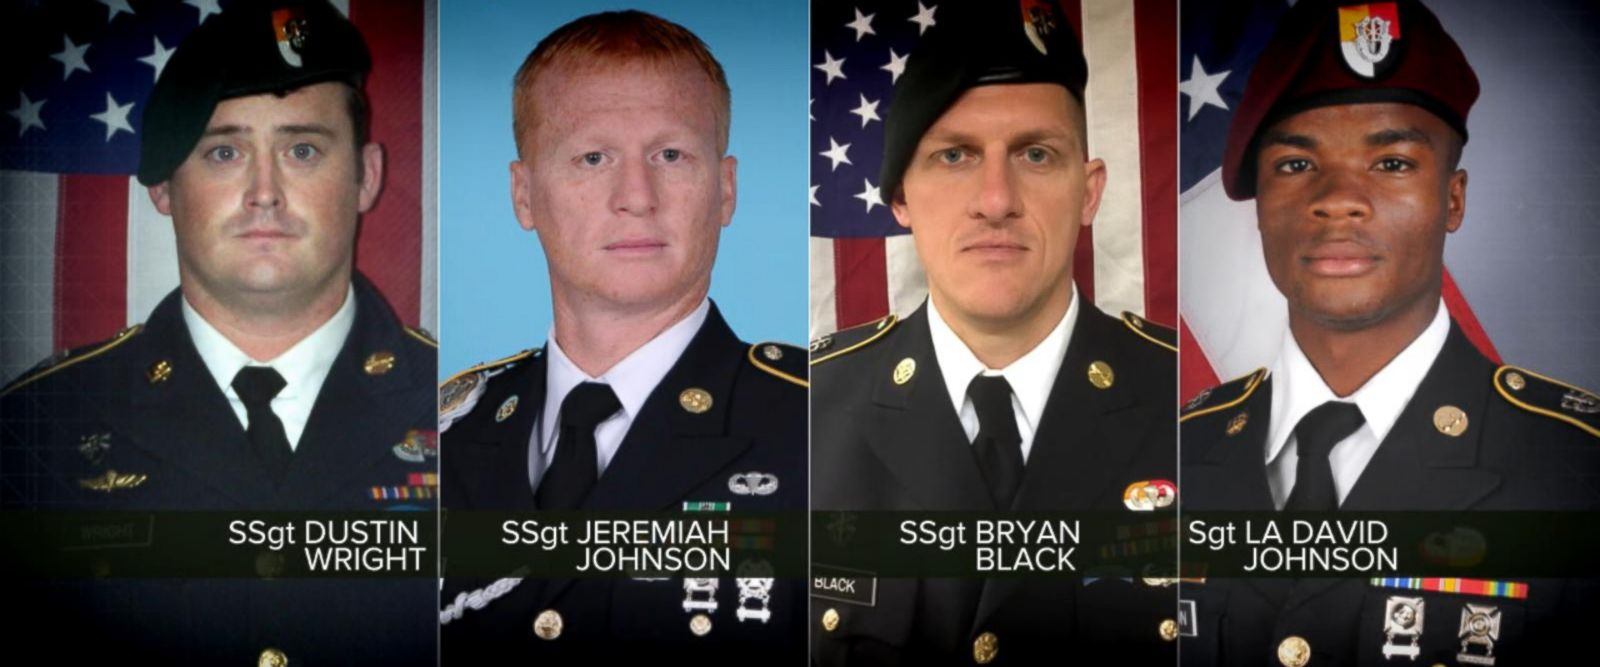 VIDEO: Questions remain 2 weeks after deadly ambush in Niger